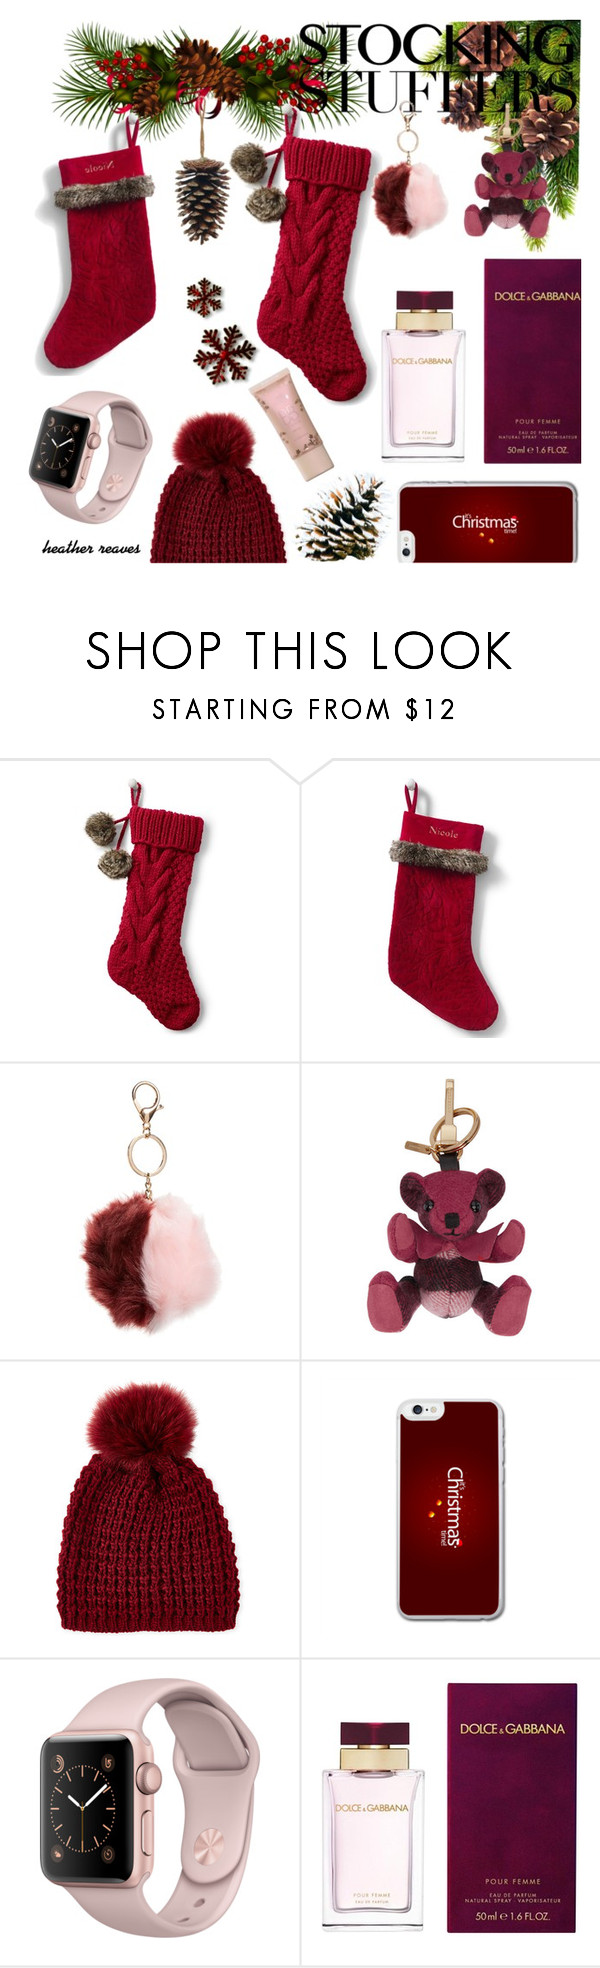 """""""Gift Guide: Stocking Stuffers"""" by heather-reaves ❤ liked on Polyvore featuring Lands' End, Topshop, Burberry, Kyi Kyi, Dolce&Gabbana and giftguide"""